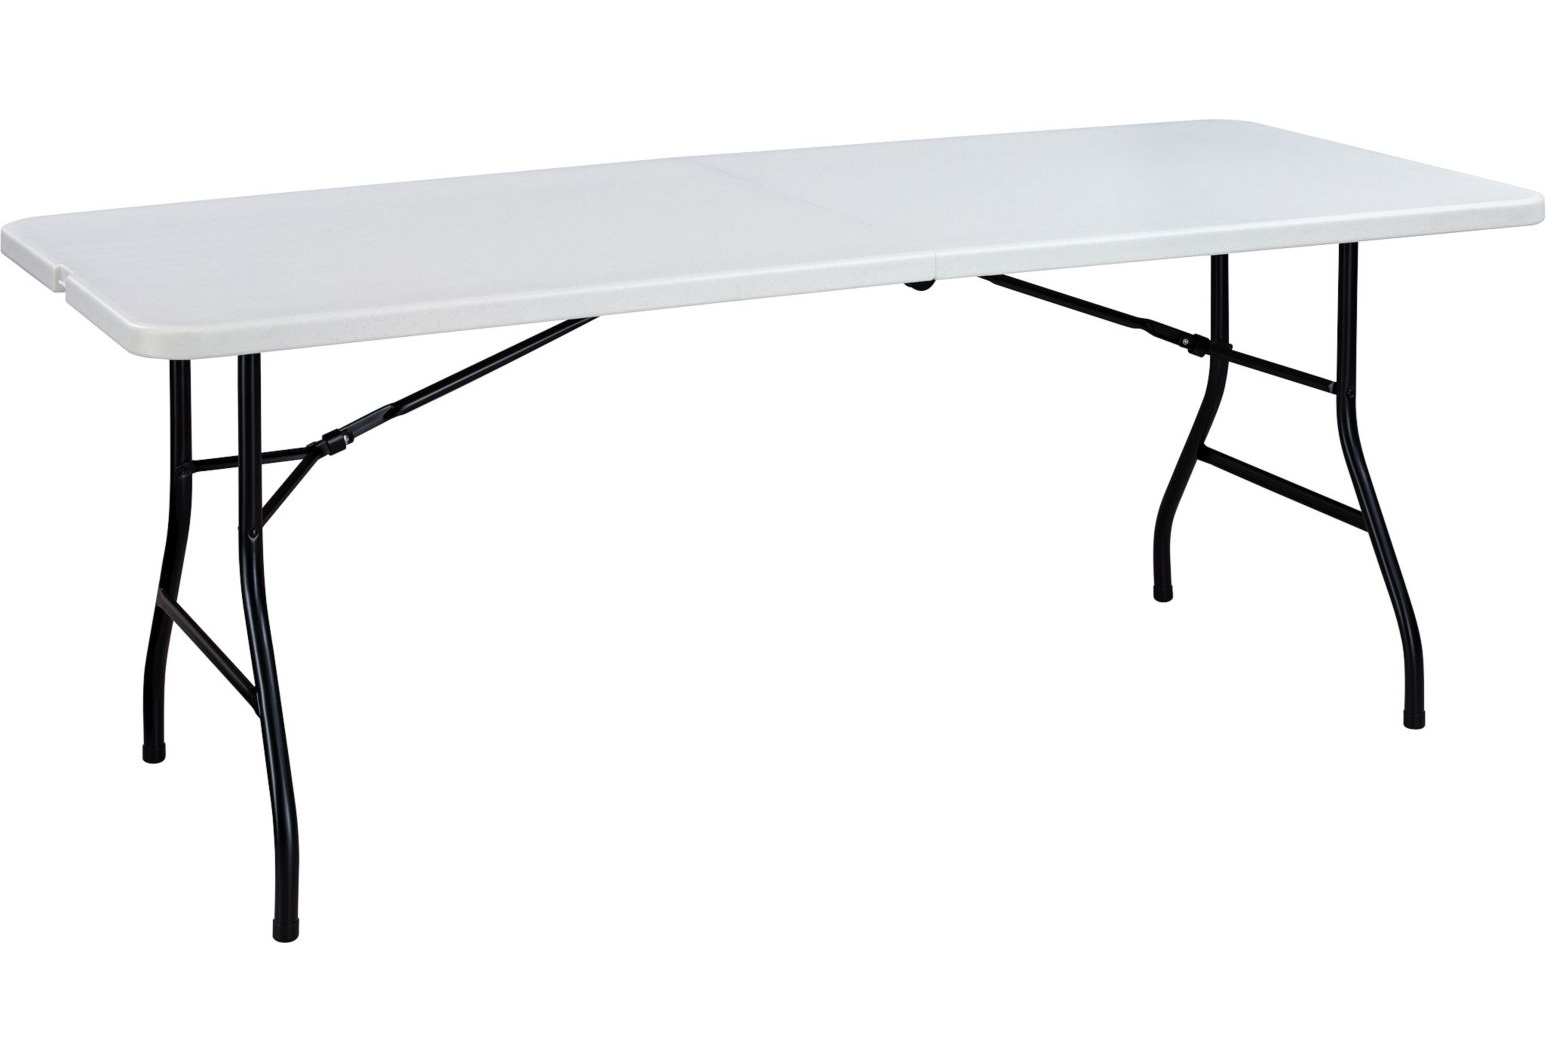 - Folding Table Rental - 6 Foot Table With Steel Legs » Rentals By